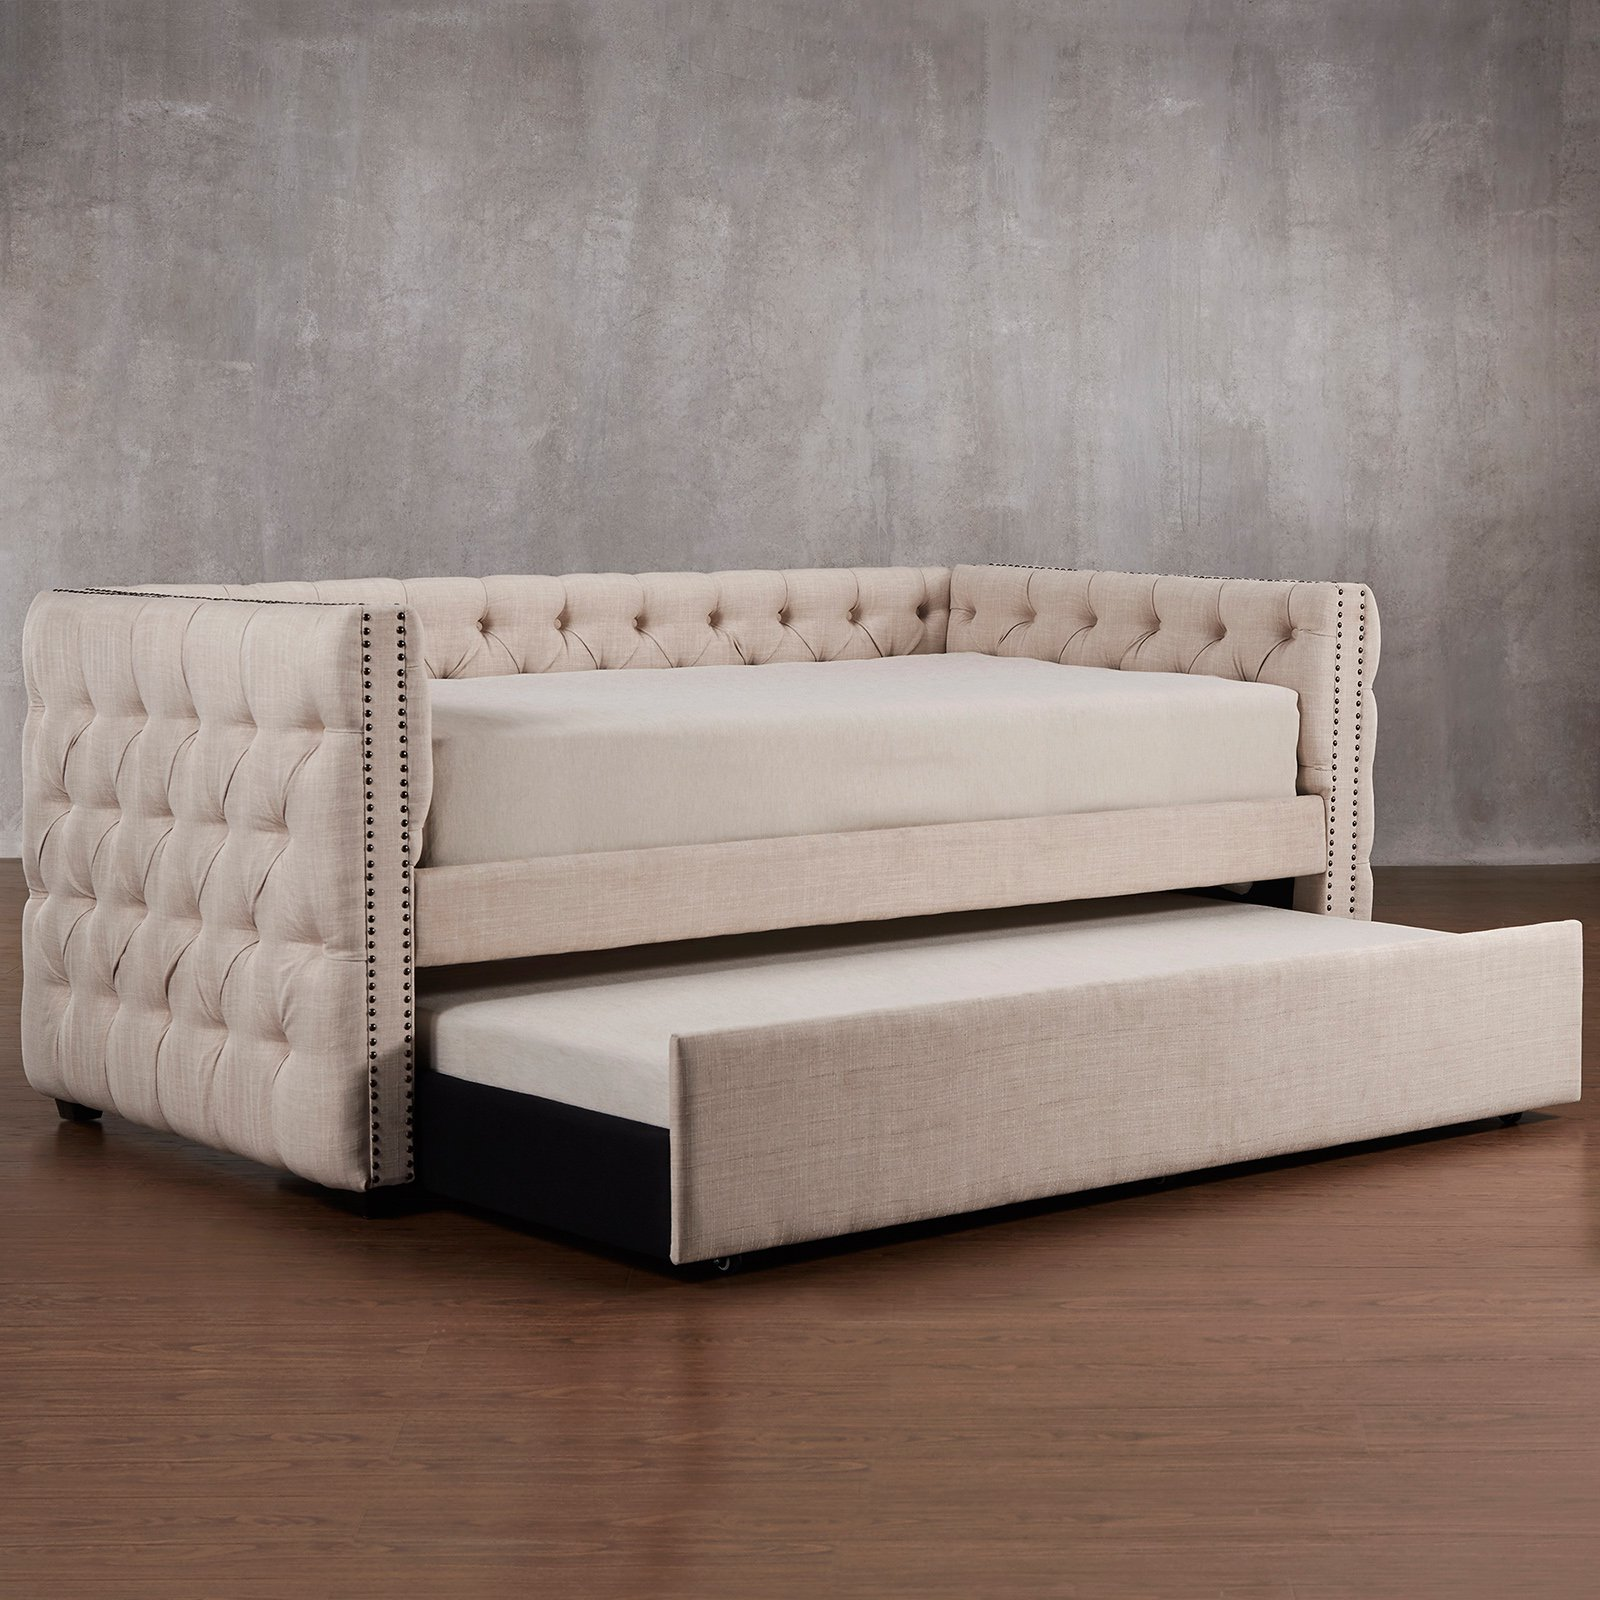 chelsea lane kenswick tufted upholstered daybed with trundle  walmartcom. chelsea lane kenswick tufted upholstered daybed with trundle